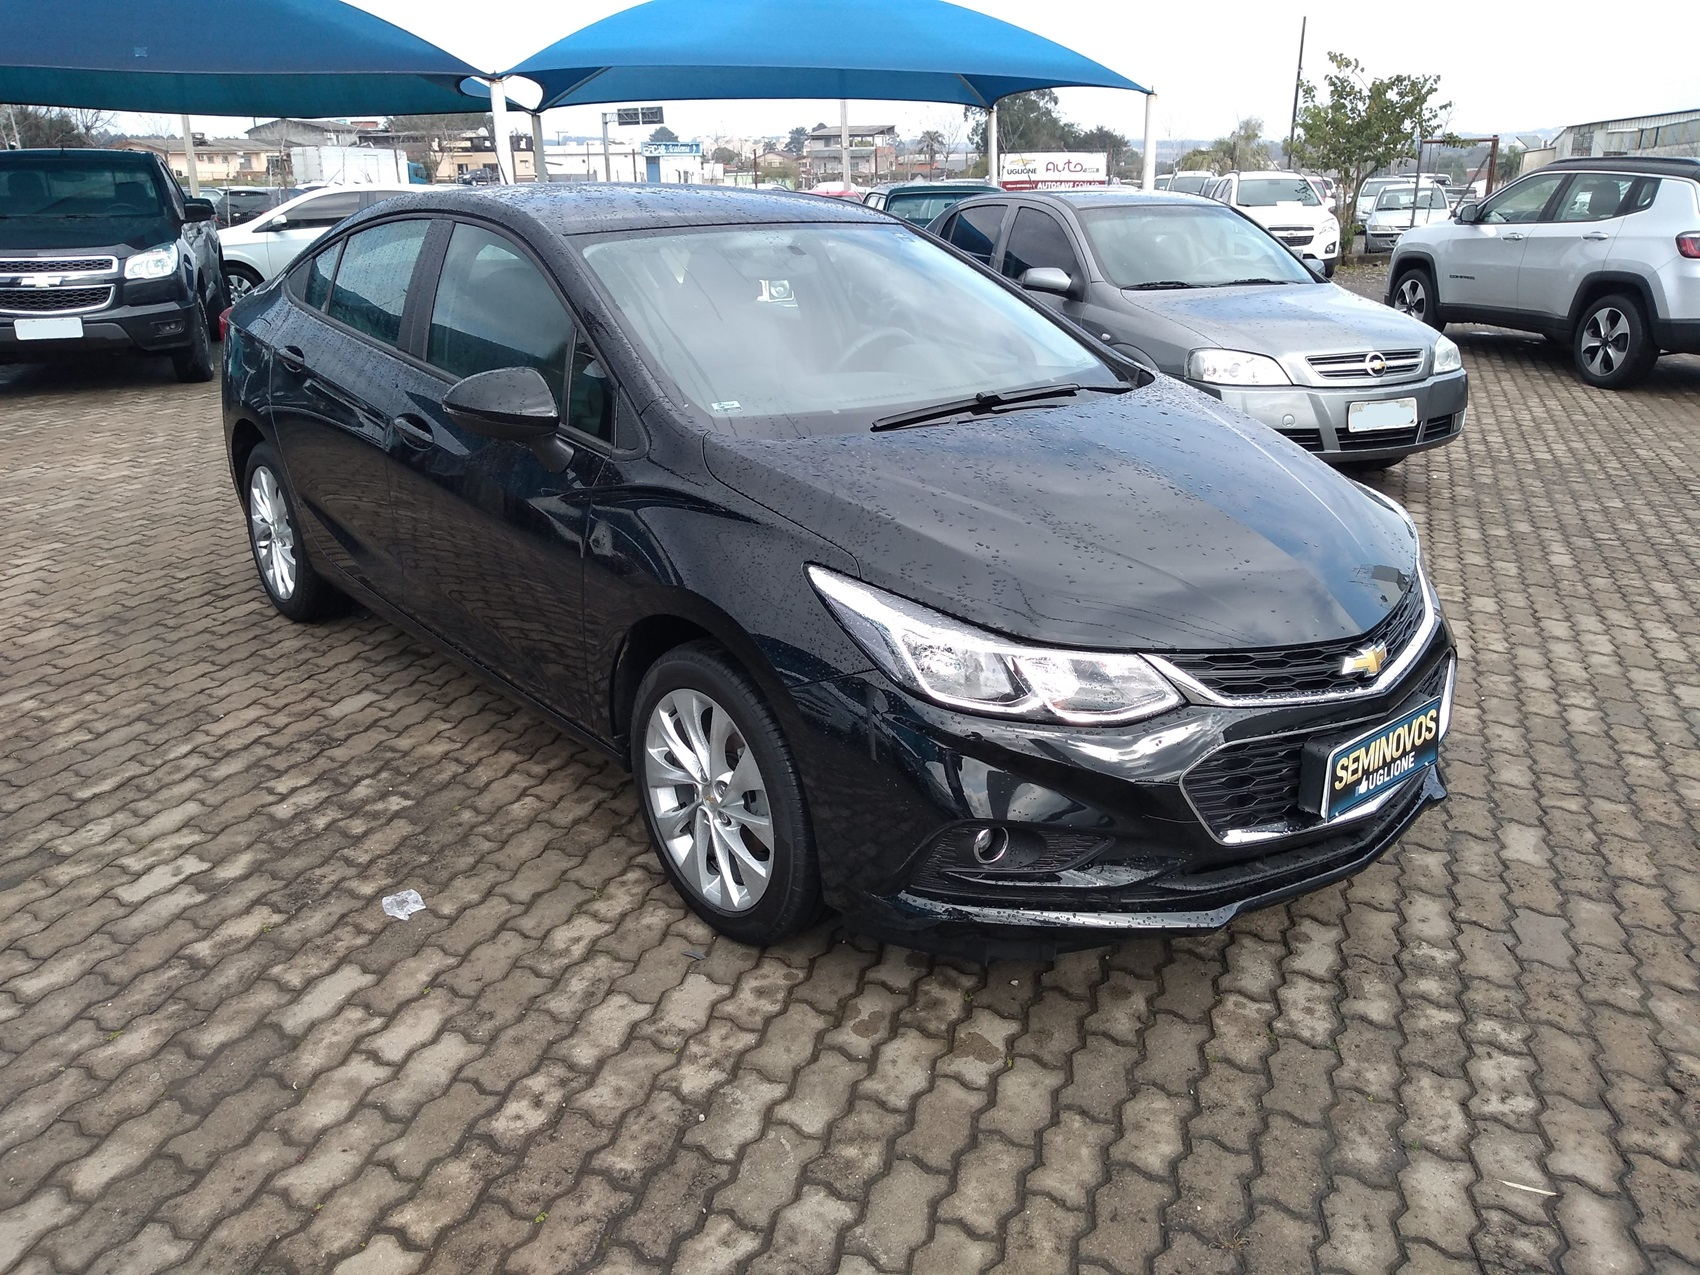 CHEVROLET CRUZE LT TURBO . 1.4 2018